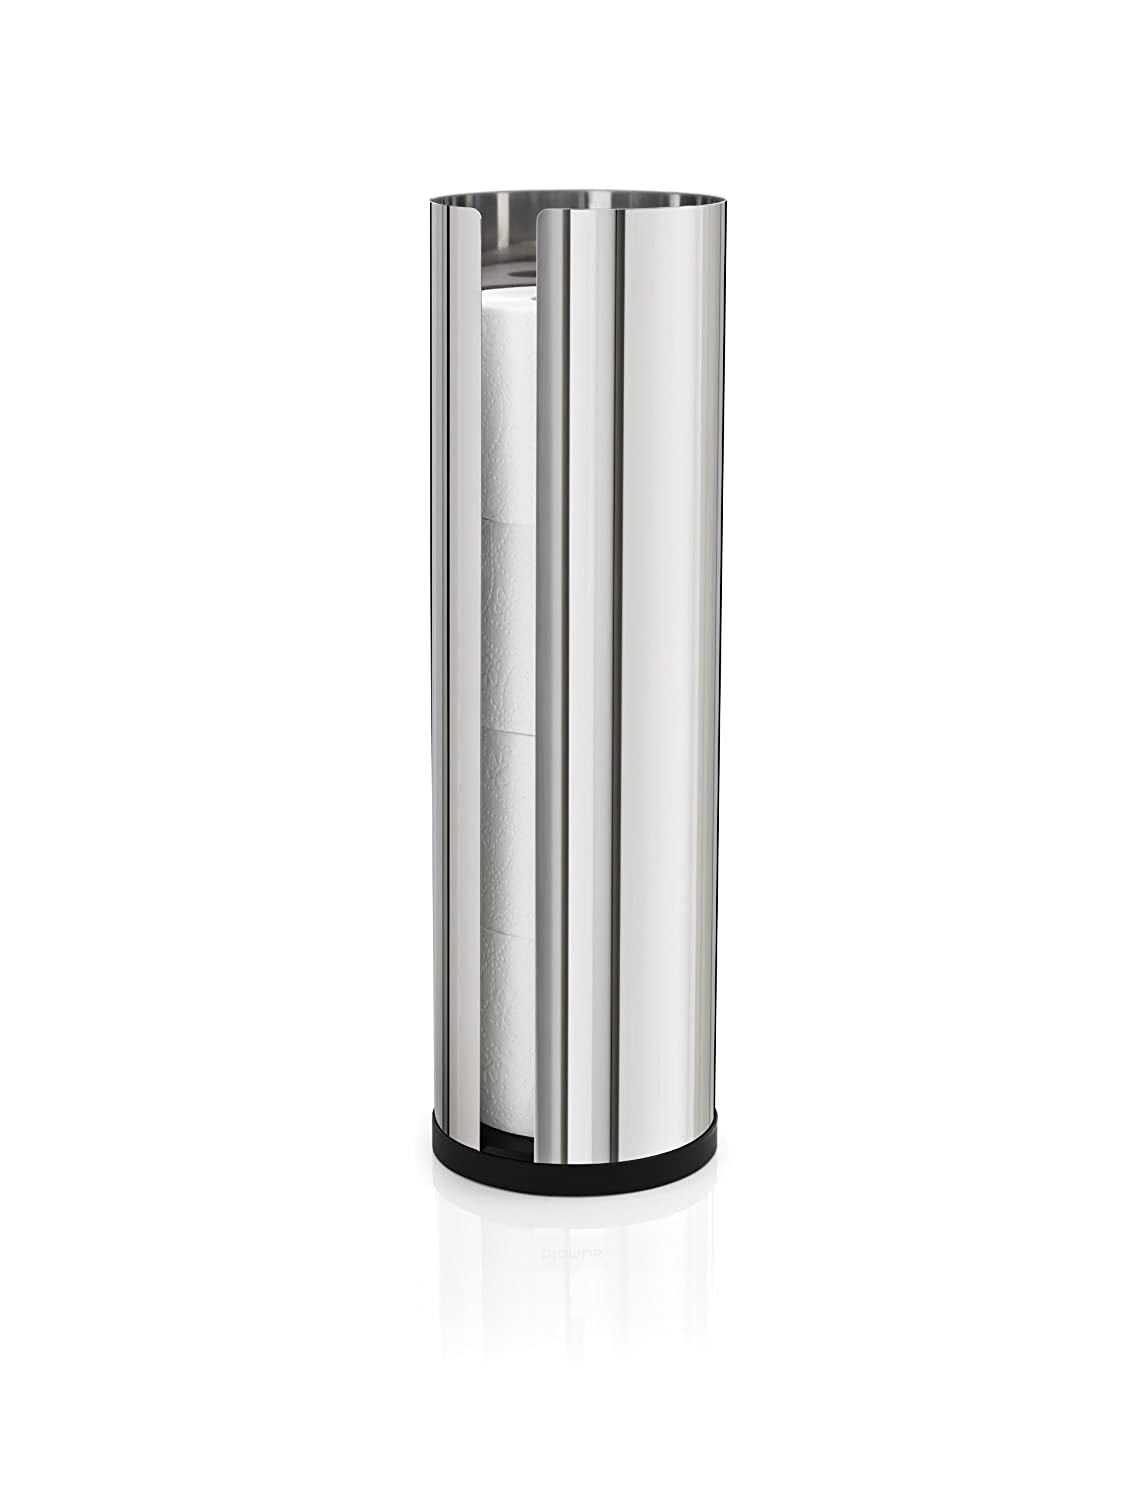 Amazon.com: Blomus 66658 Polished Stainless Steel Spare Toilet ...